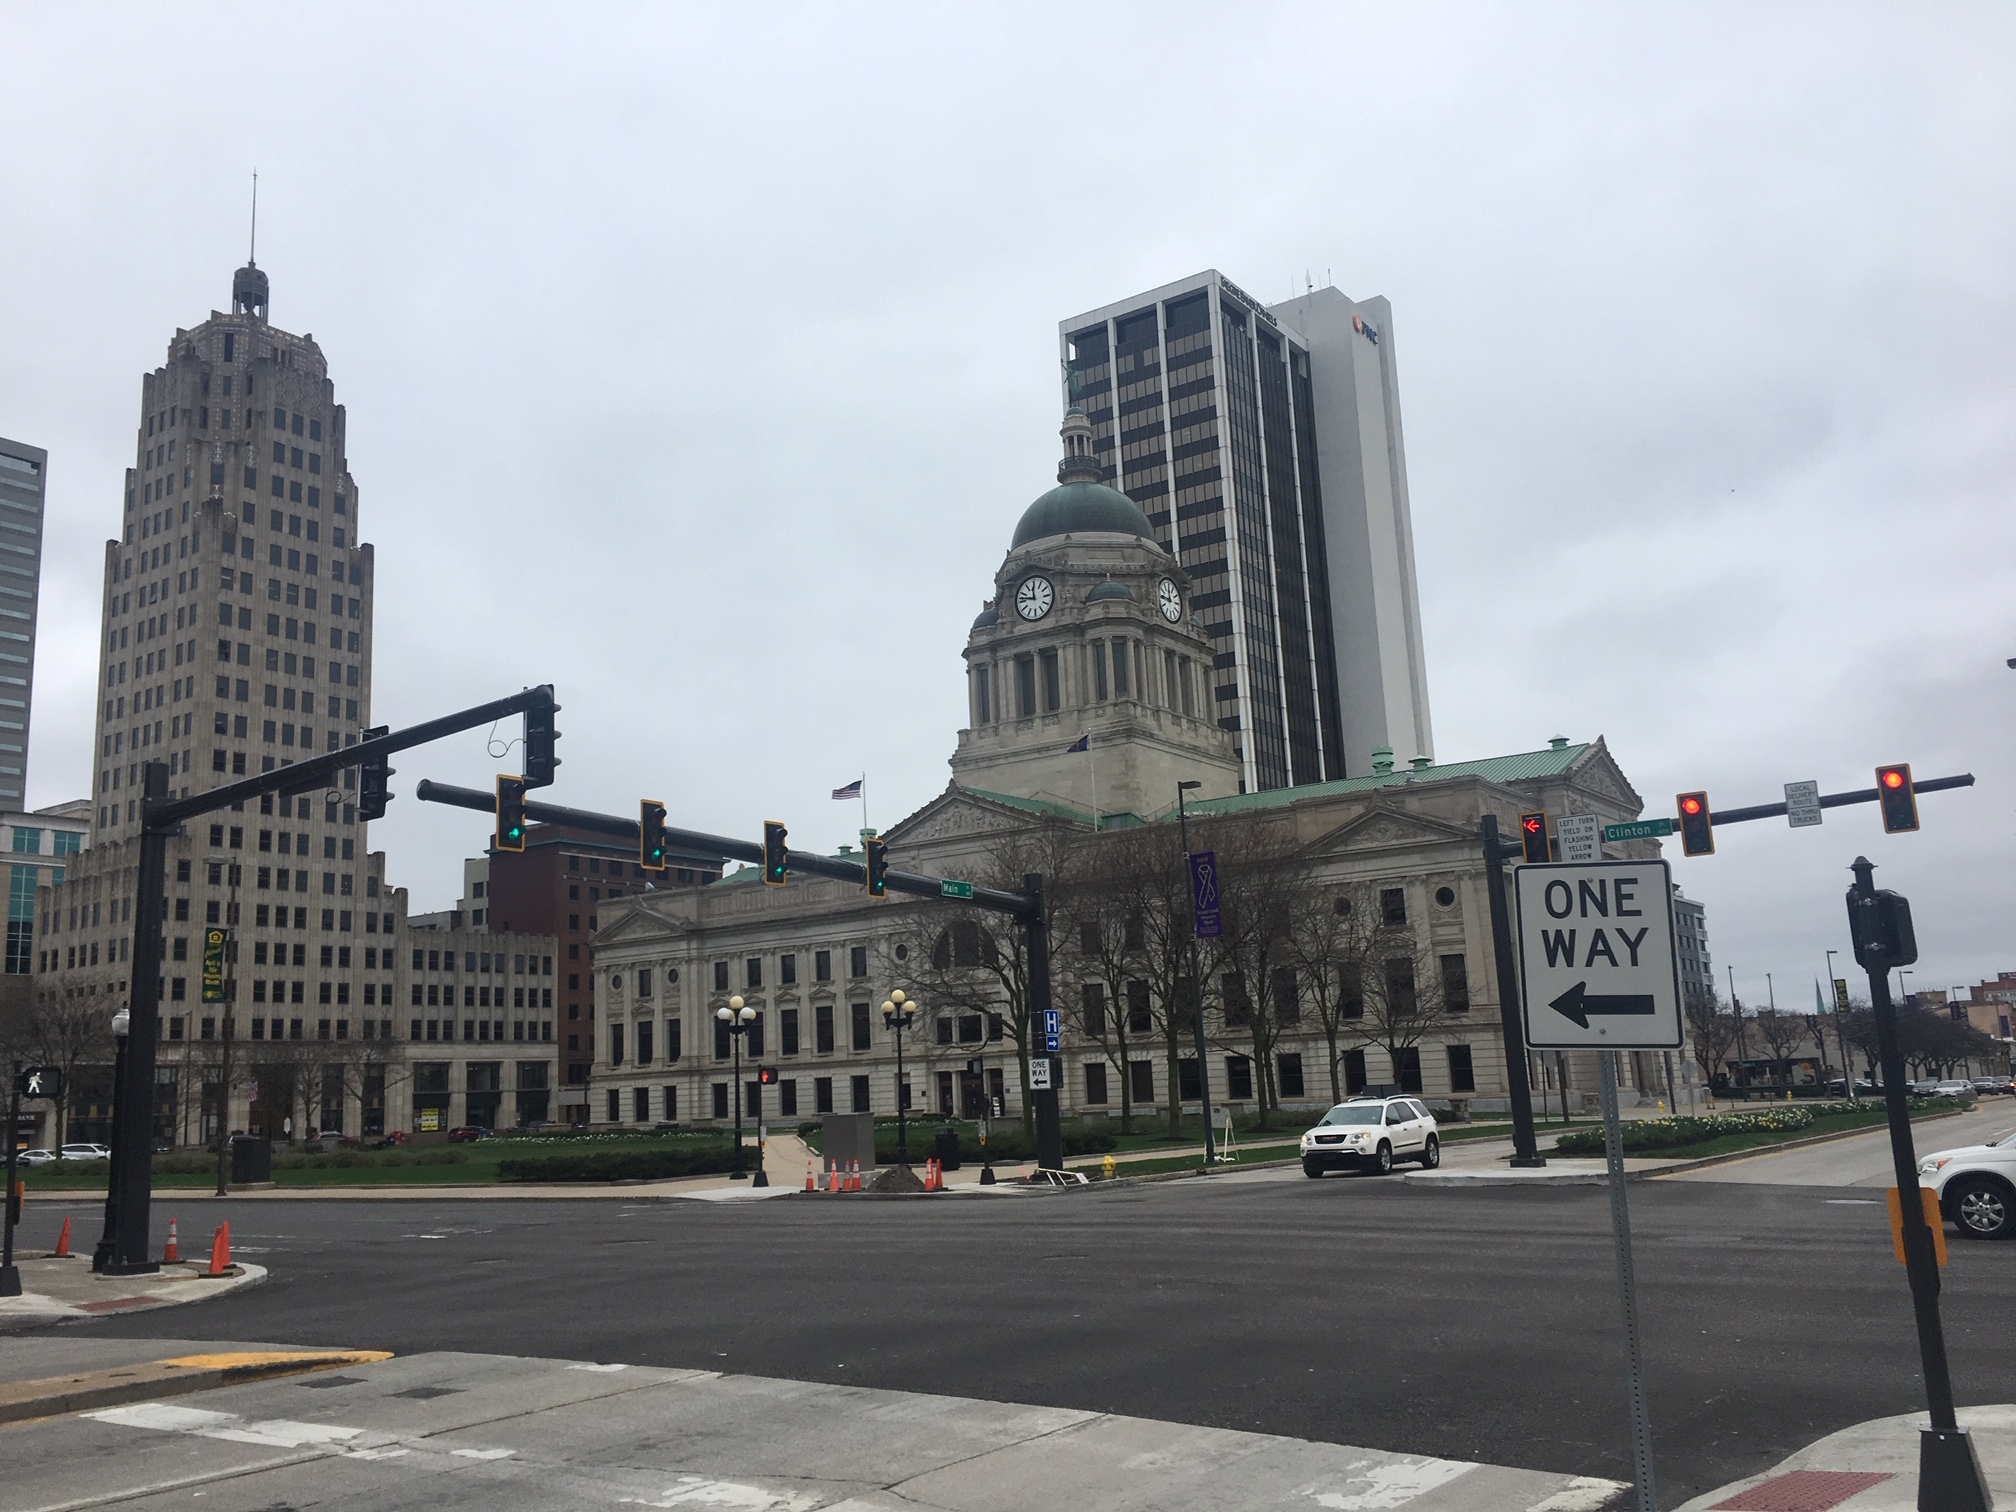 """65adf8a8b0 Since Reno's motto is """"The Biggest Little City in the World,"""" Fort Wayne's  should be """"The Most Inaccessible Accessible Arts City in the World."""